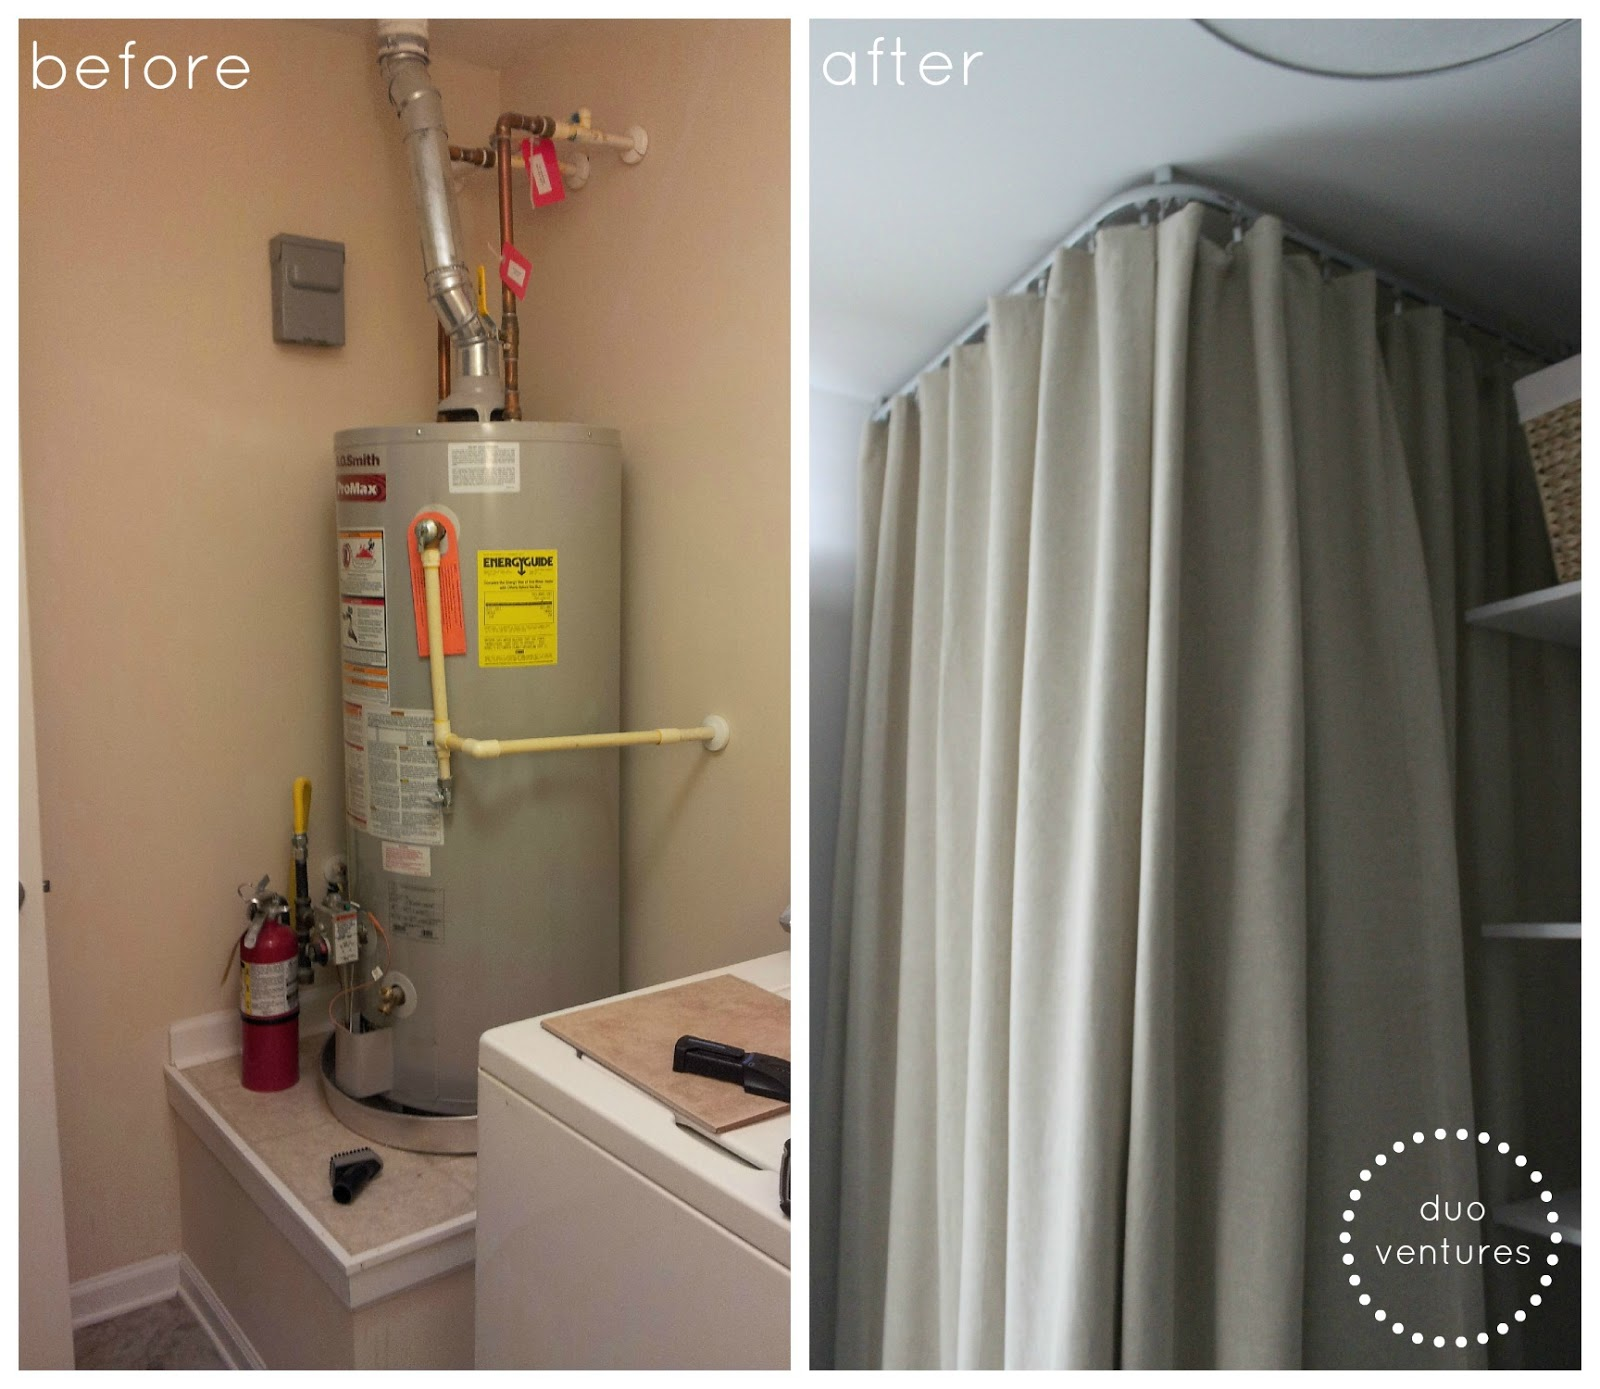 The Best Places For a Water Heater in Your Home - DZine Trip